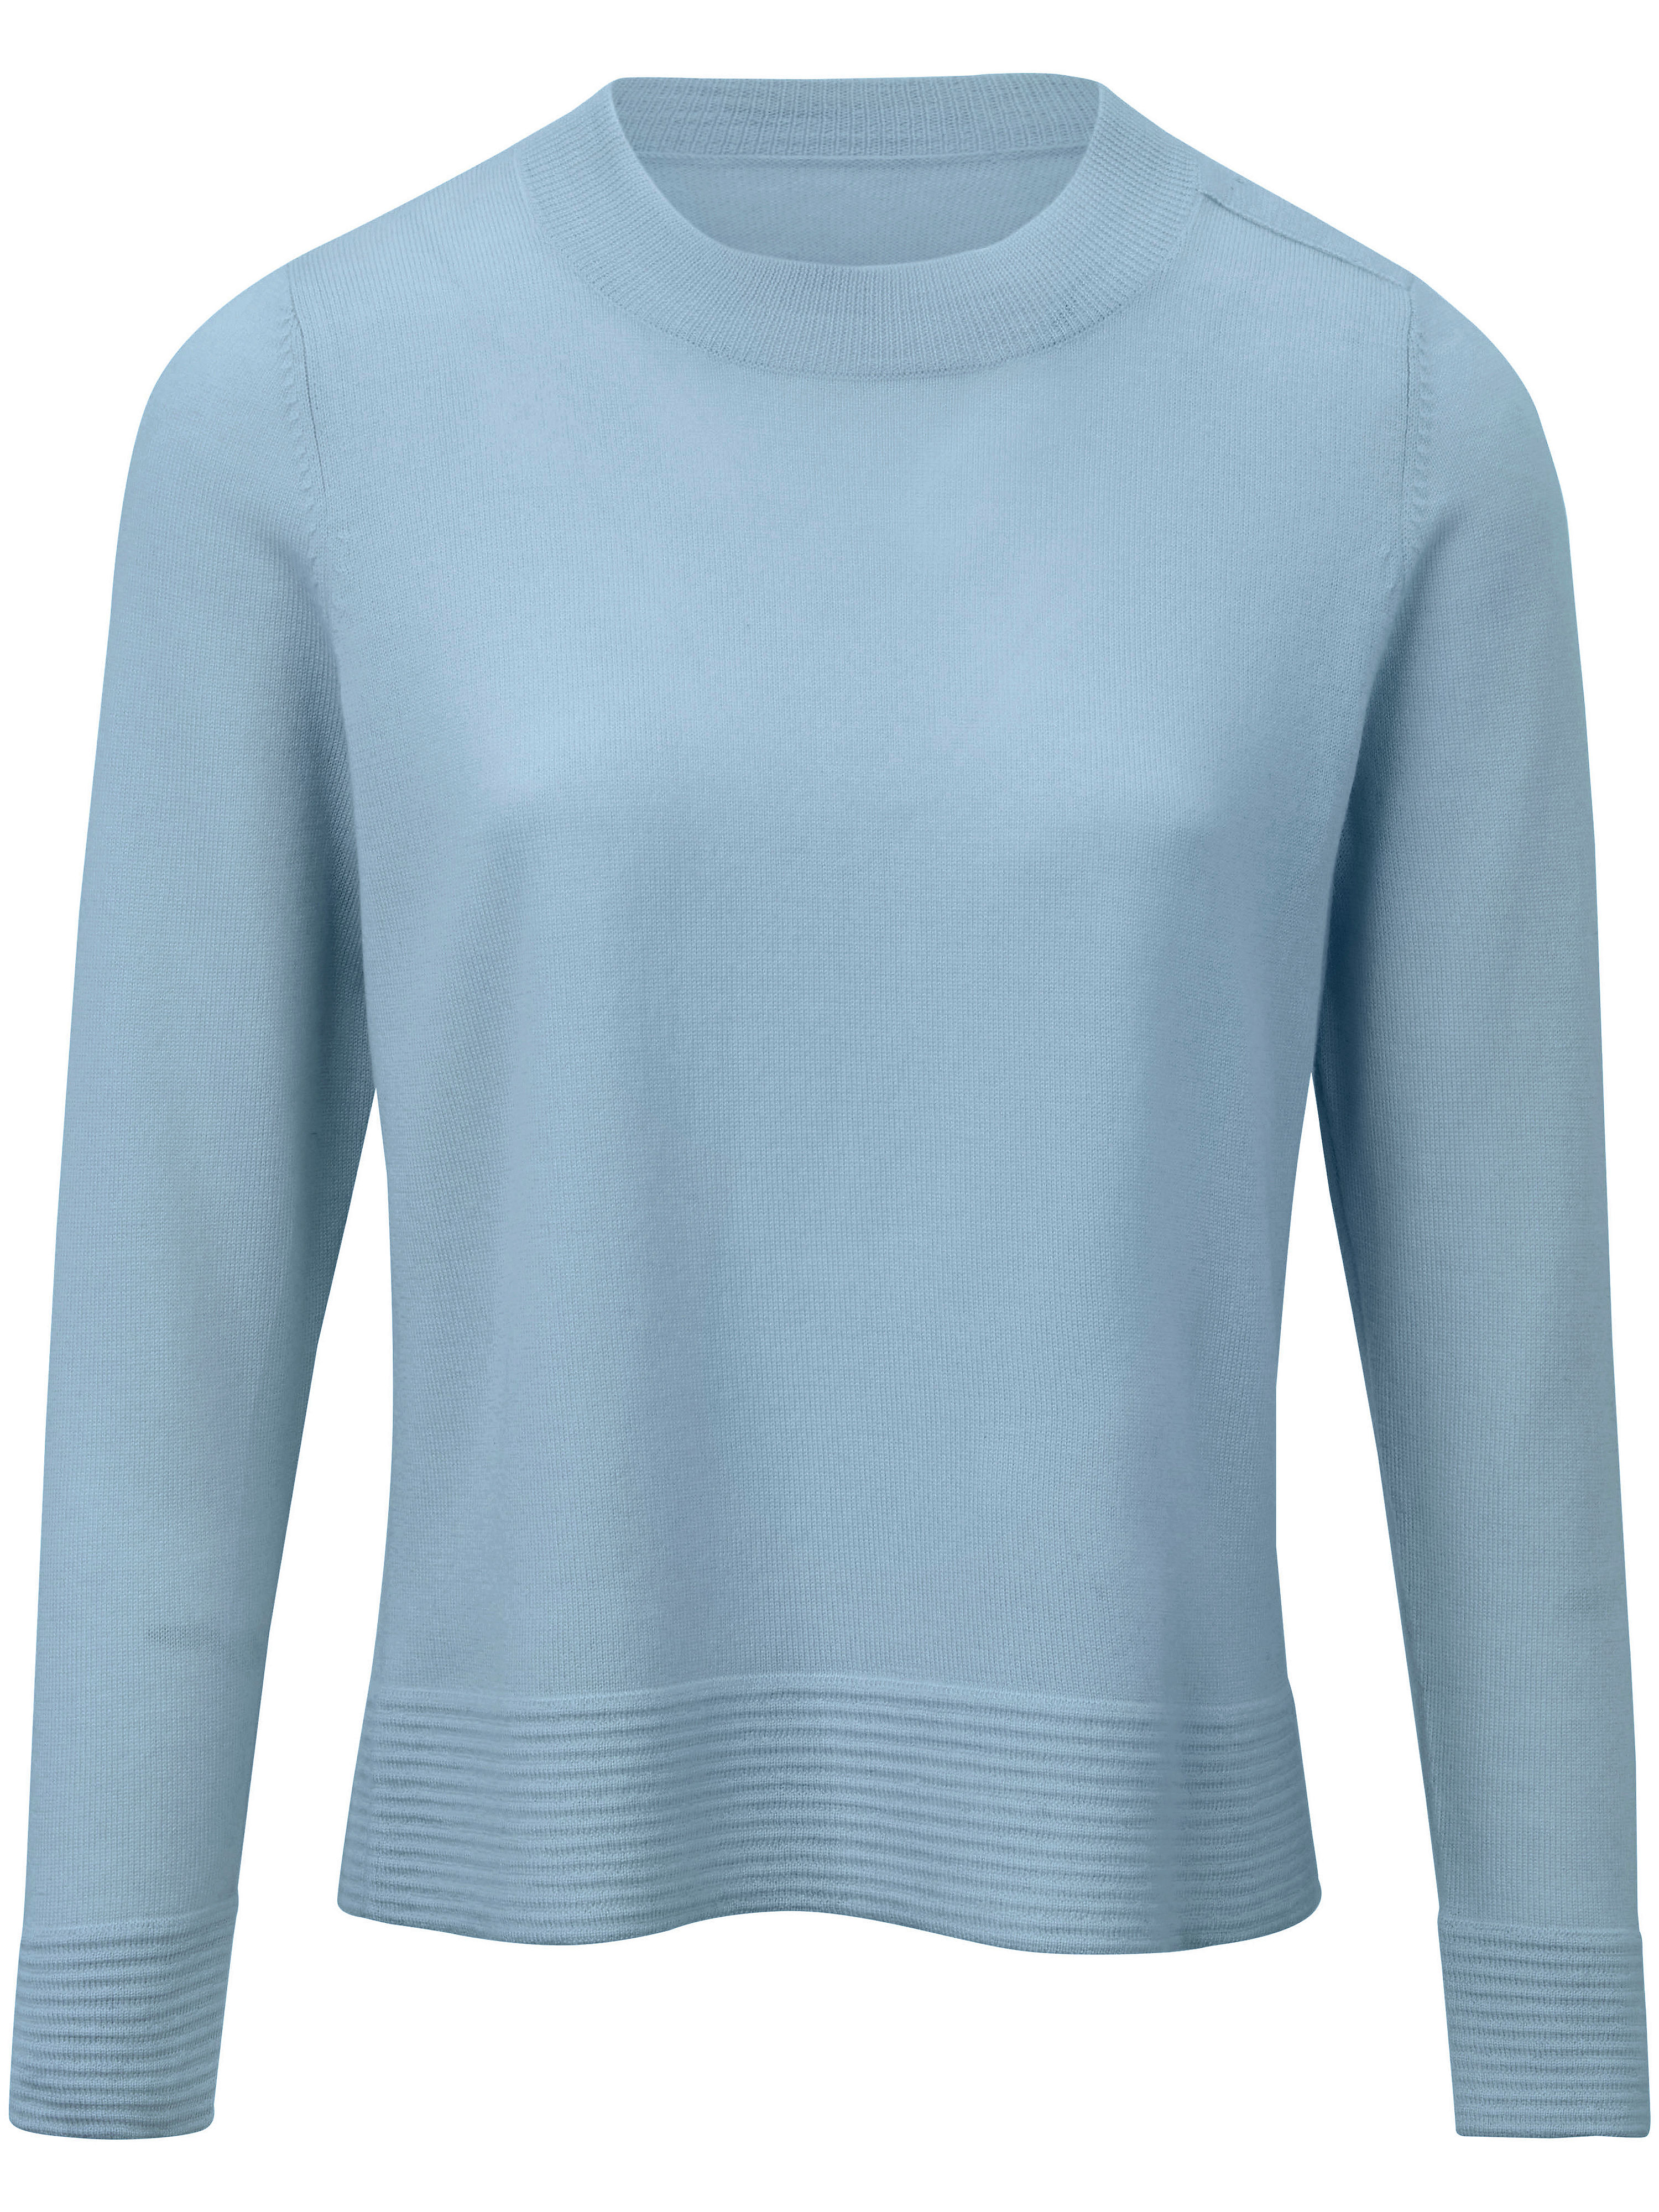 Le pull 100% laine vierge  Peter Hahn bleu taille 44